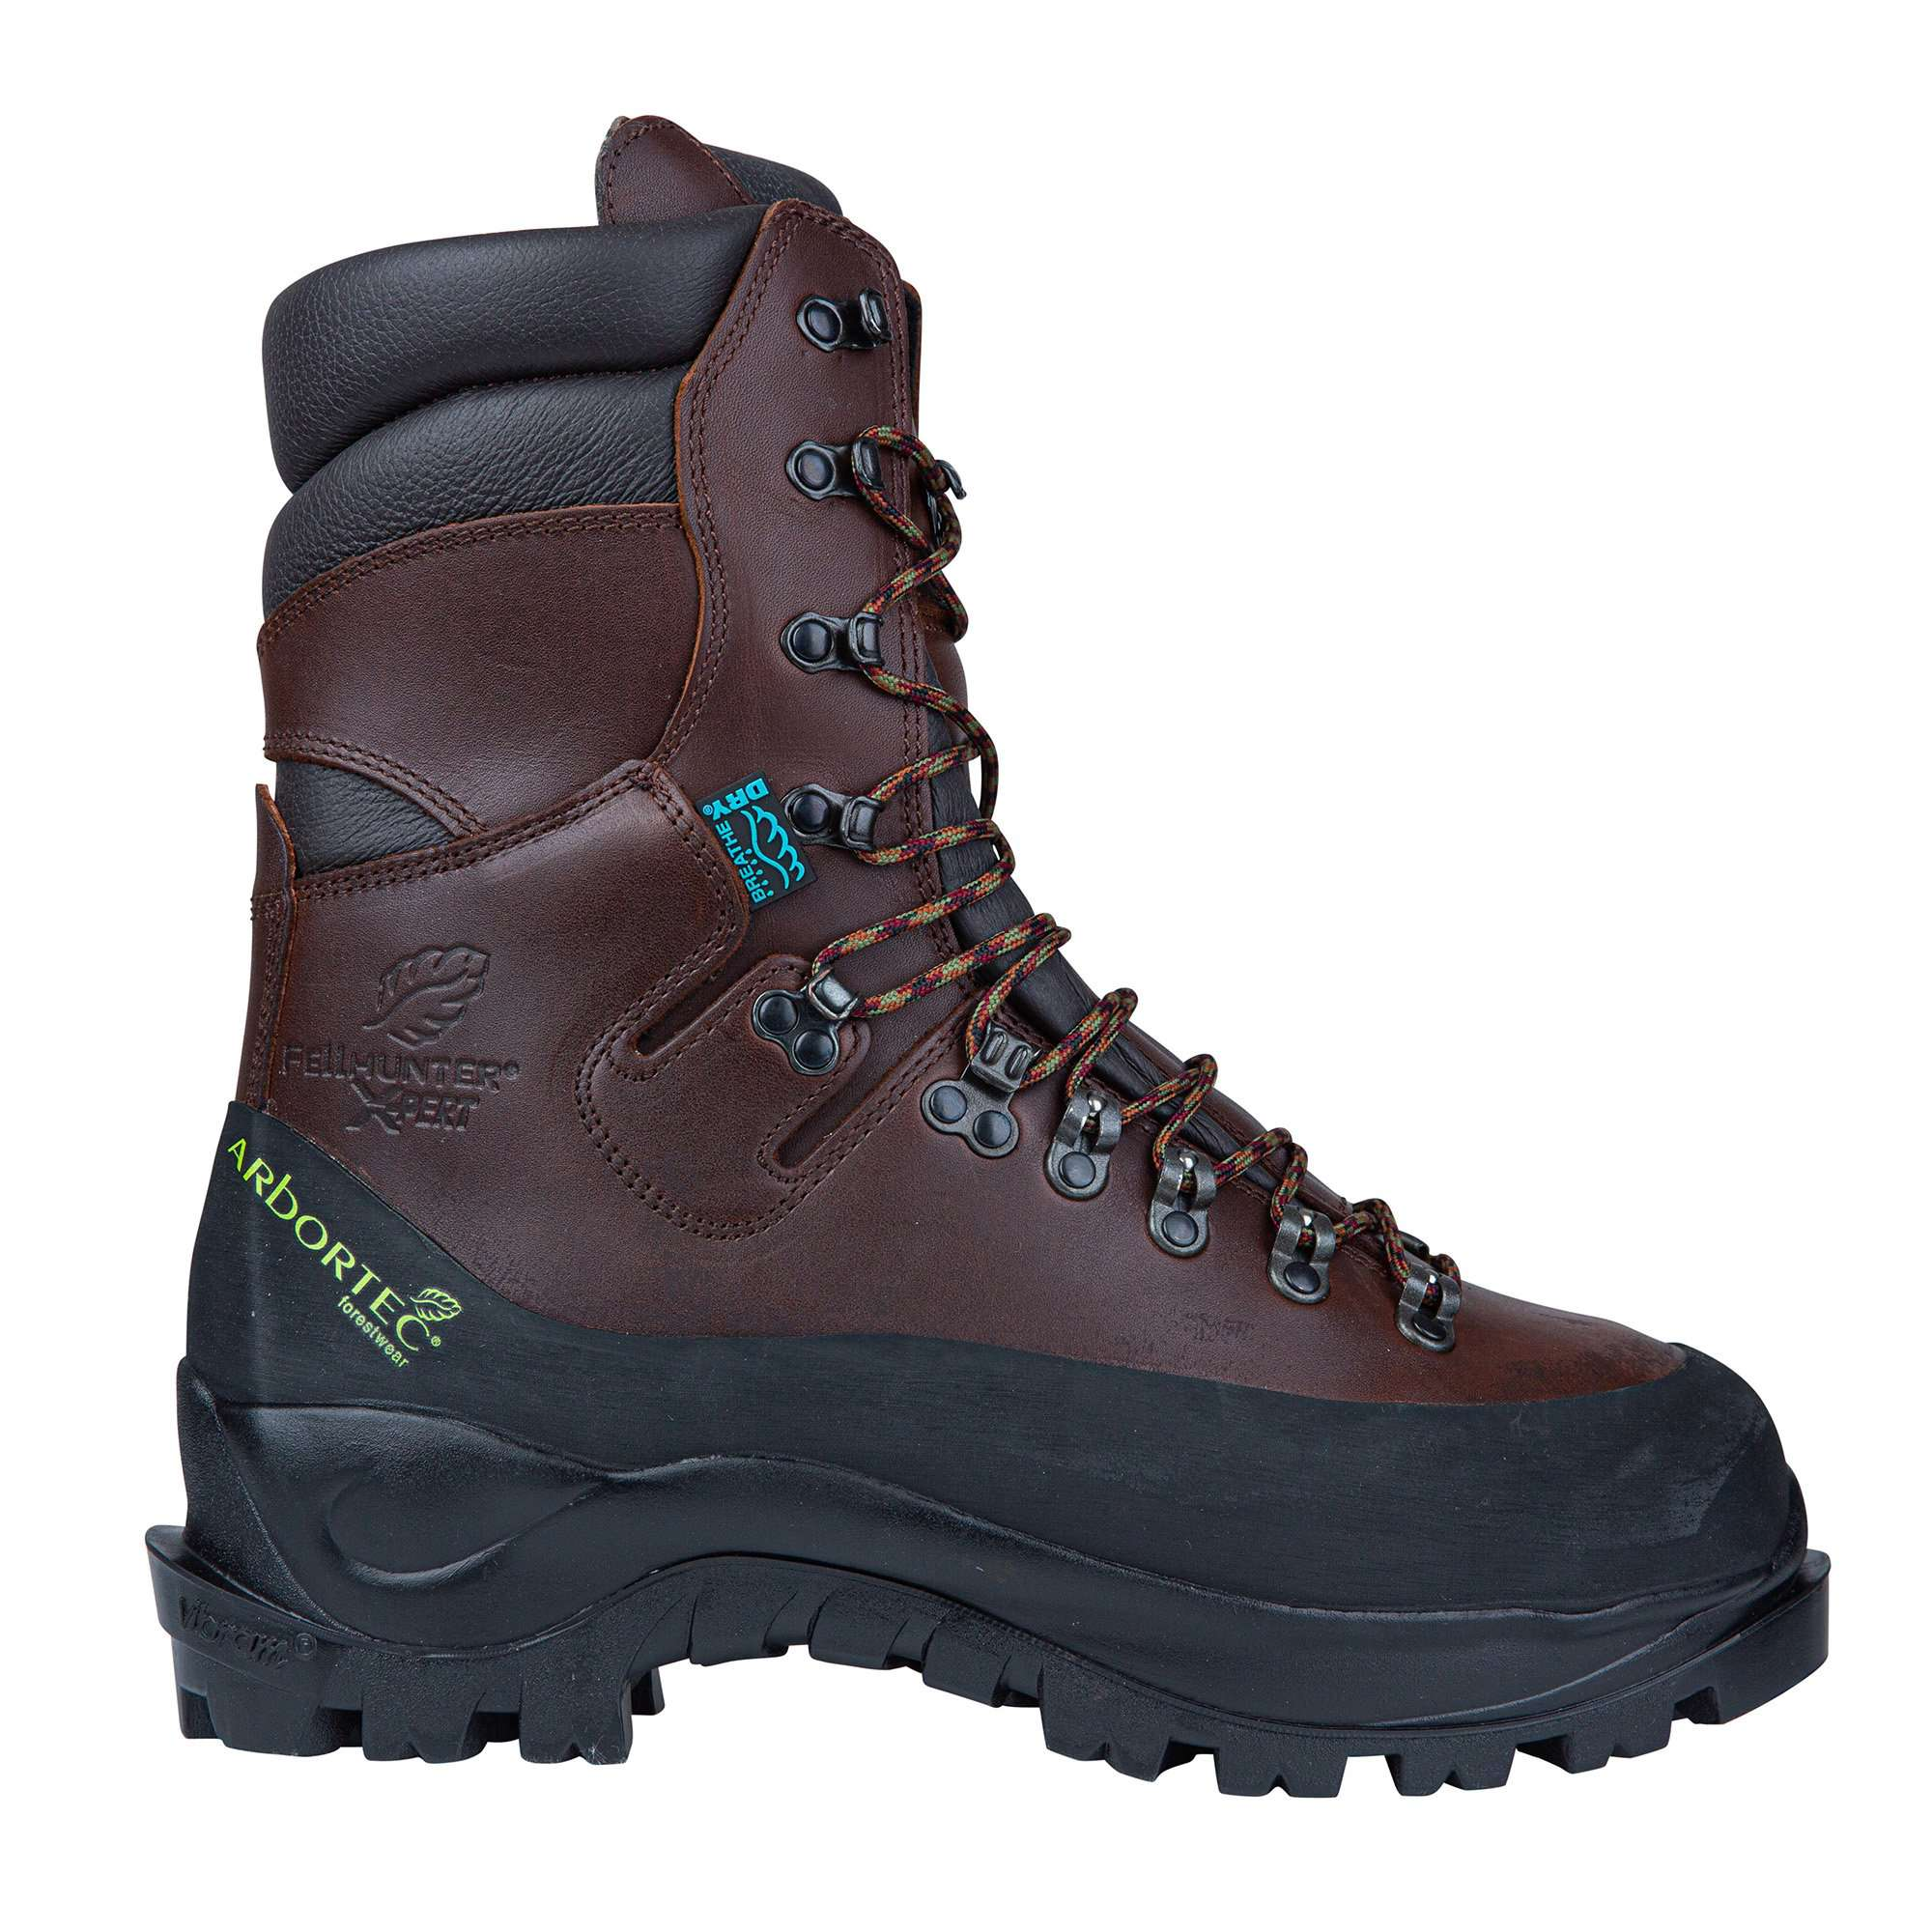 Fellhunter Expert Class 3 Chainsaw Boot - AT36500 - Arbortec Forestwear